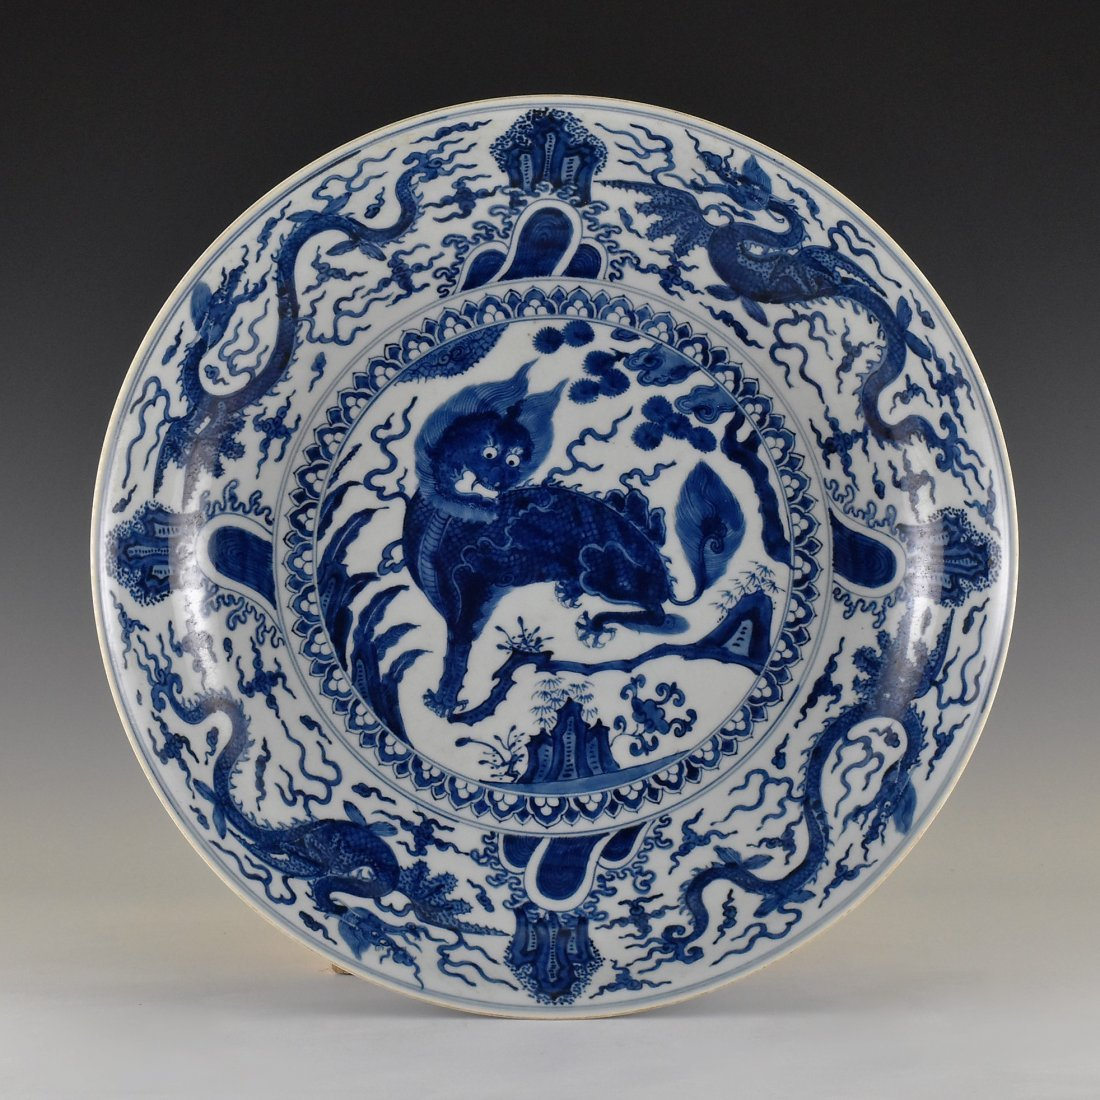 MING BLUE AND WHITE KIRIN PORCELAIN CHARGER